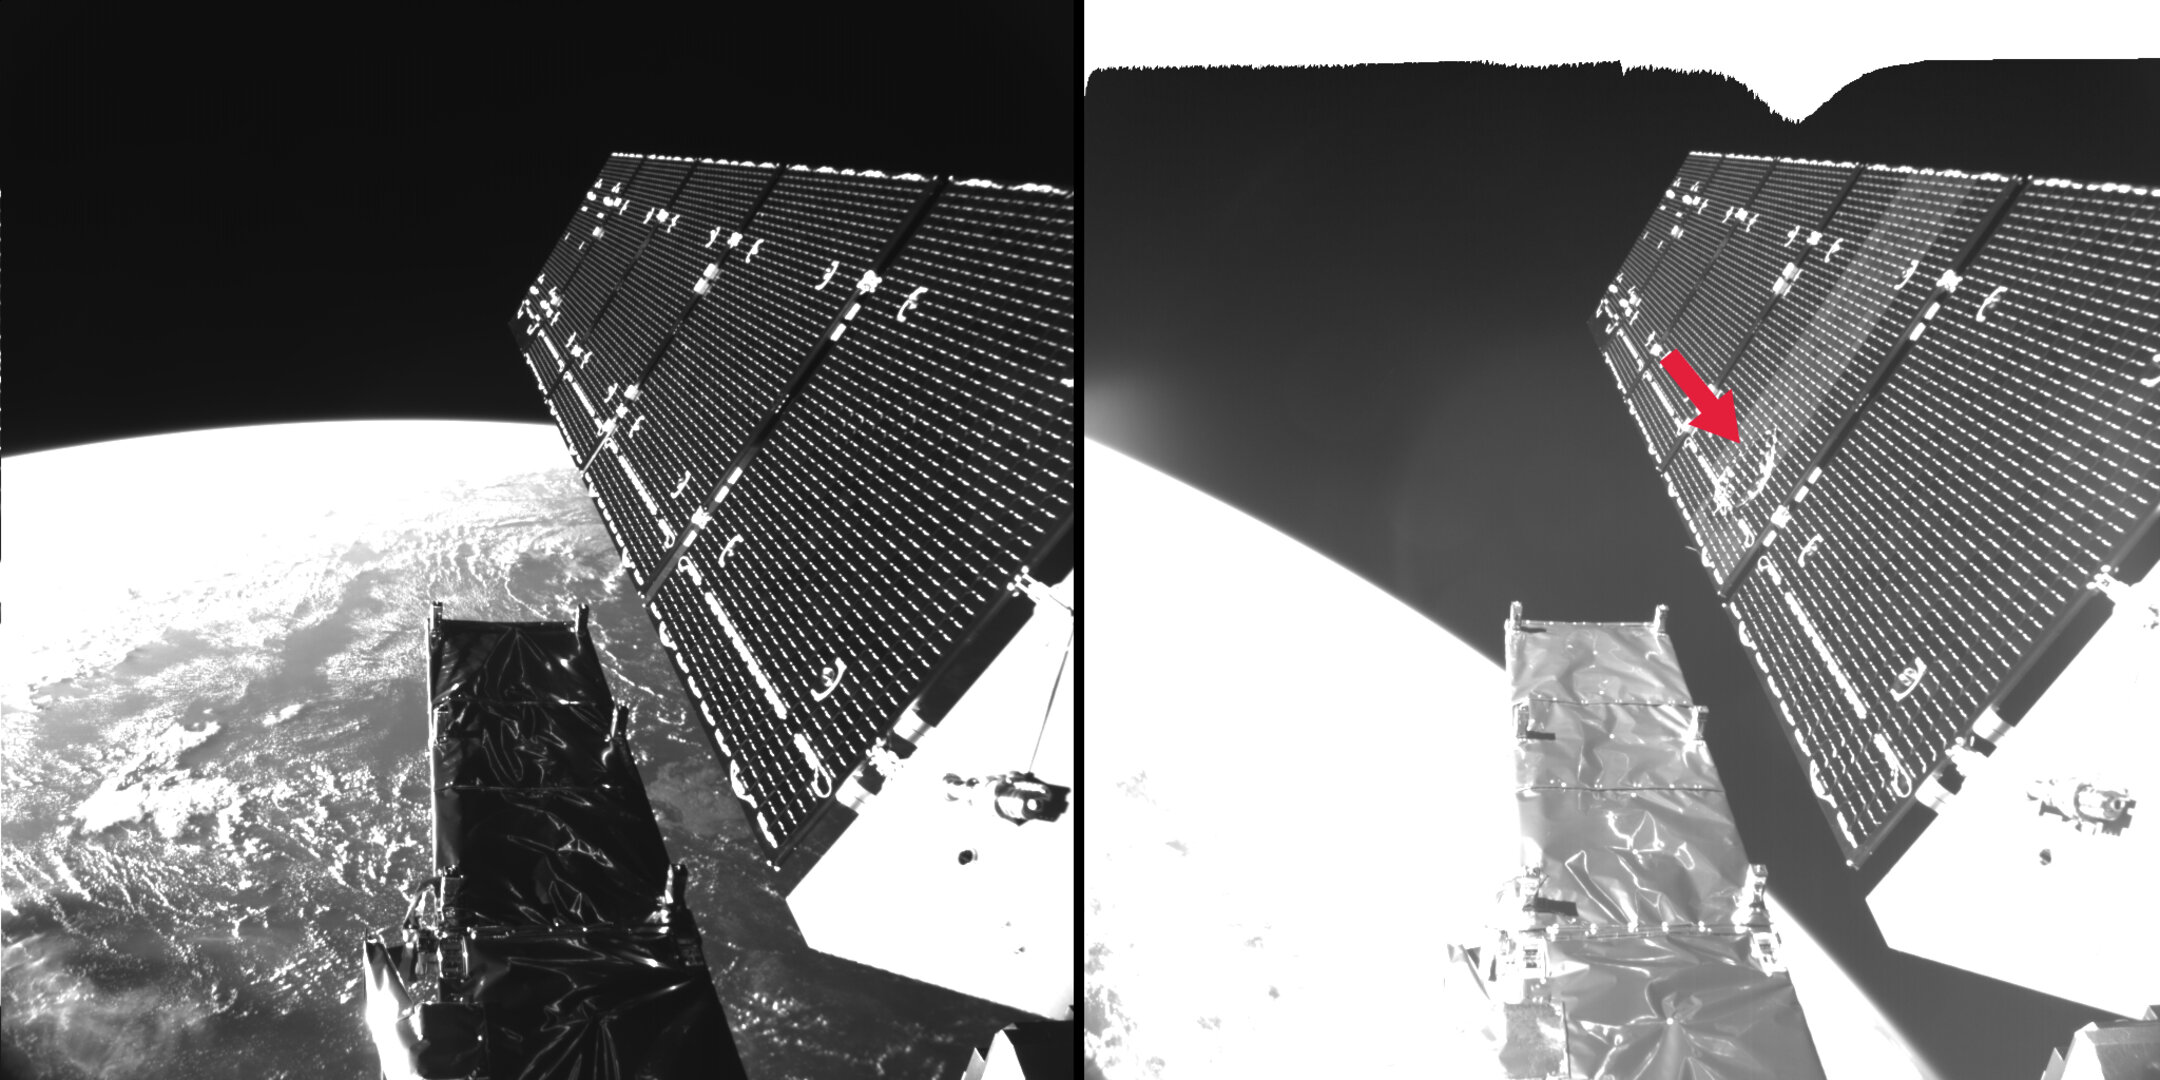 Before and after: fragment impact in space